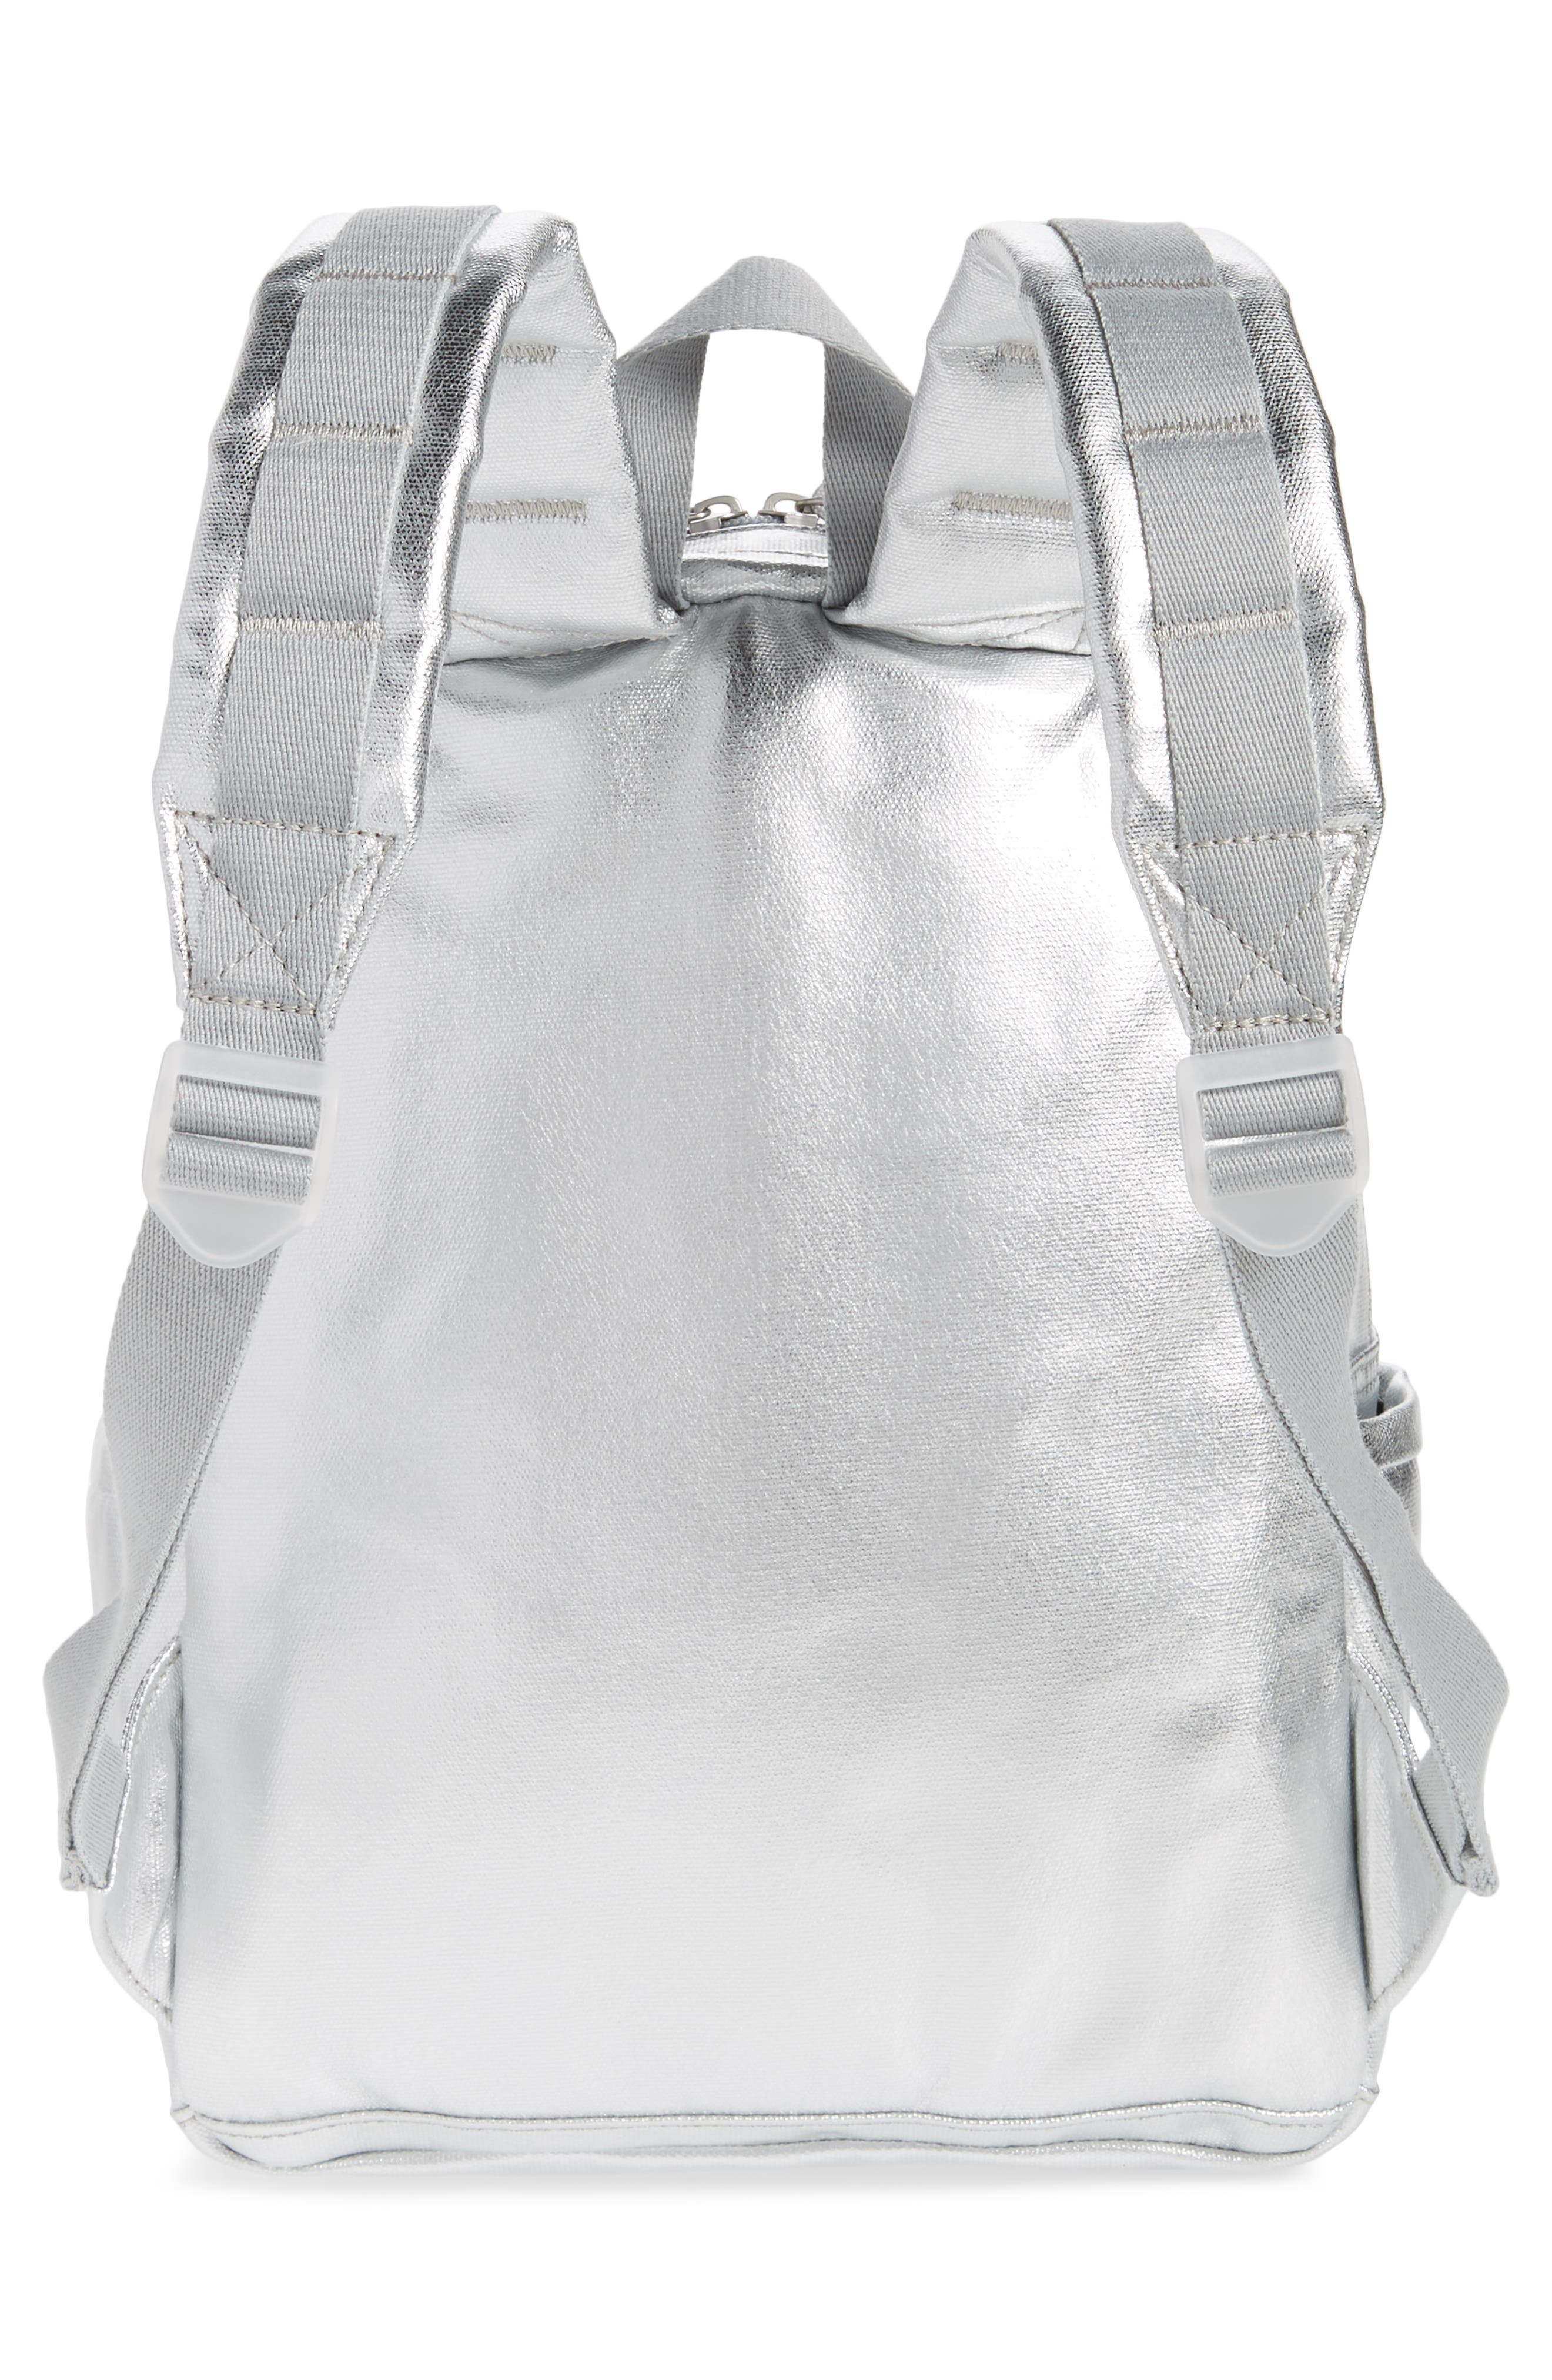 Downtown Mini Kane Canvas Backpack,                             Alternate thumbnail 3, color,                             Silver